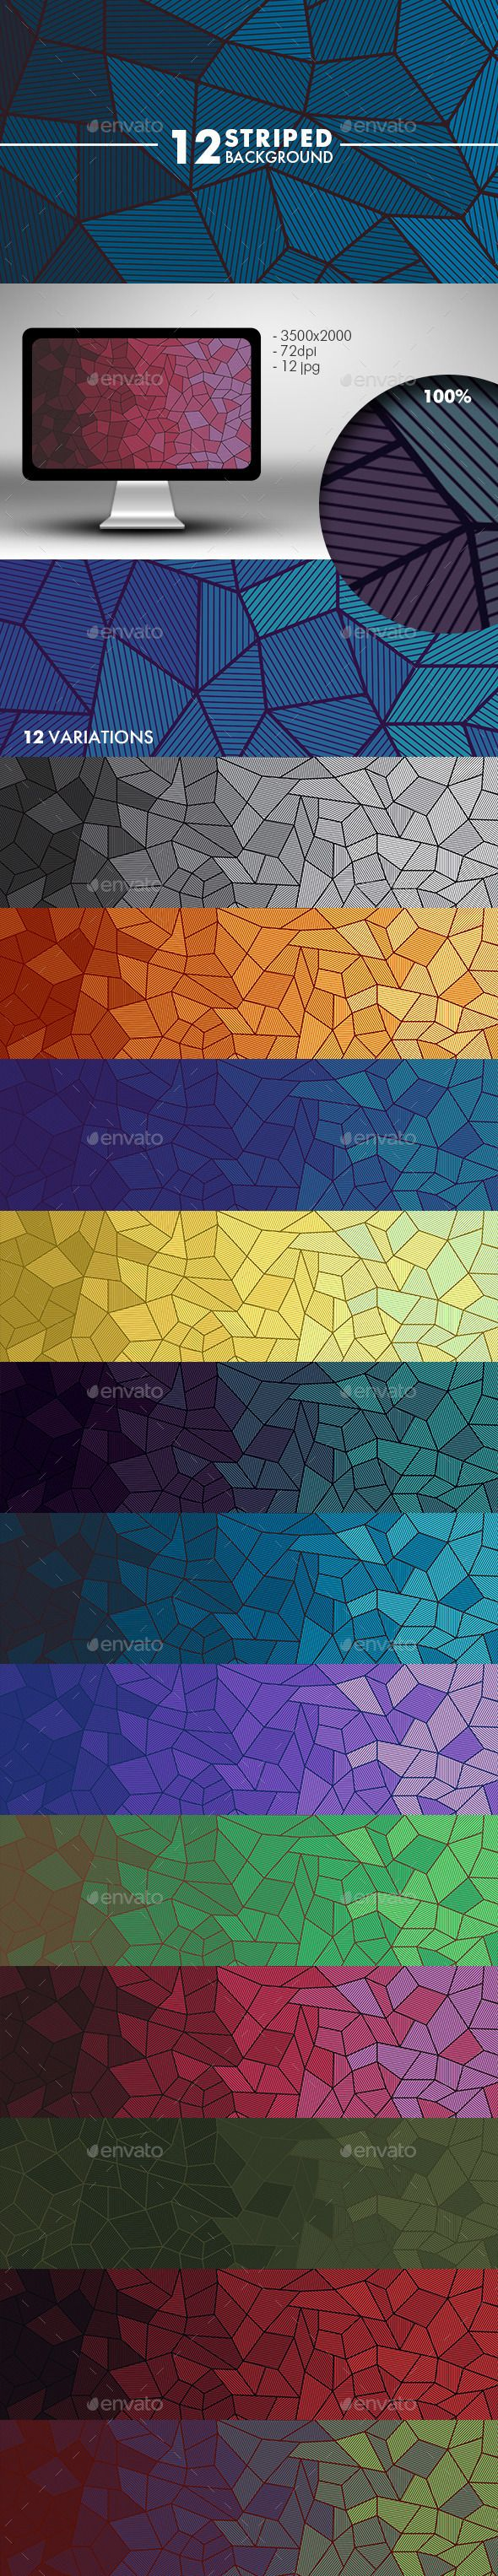 Striped Background by Kanilo Website and Desktop Backgrounds Size: 35002000px, RGB , 72dpi 12 High Resolution JPGs